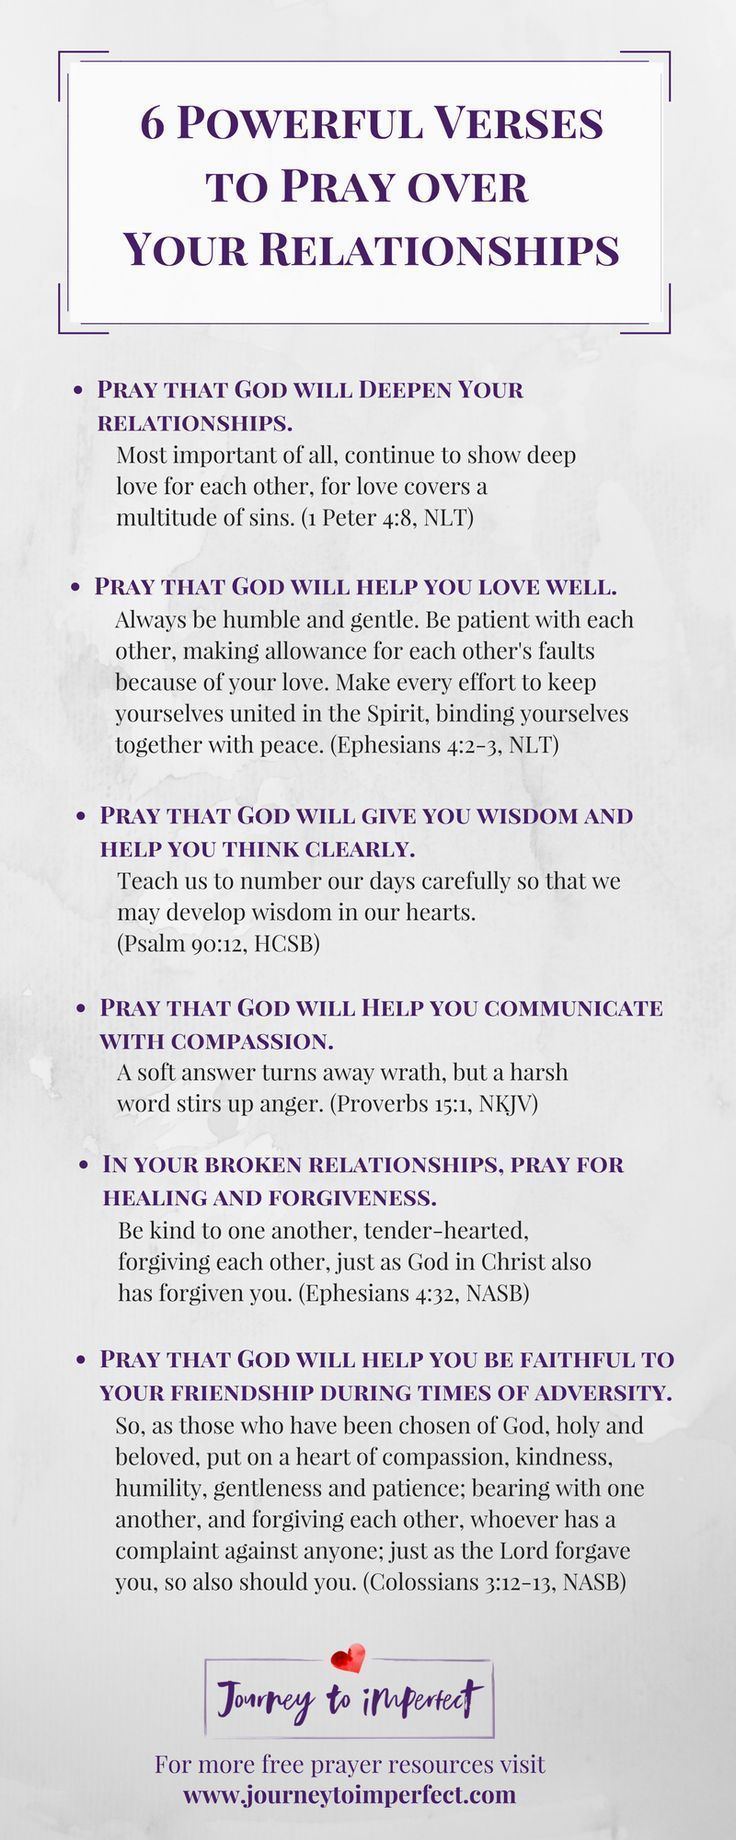 6 Powerful Verses to Pray over Your Relationships